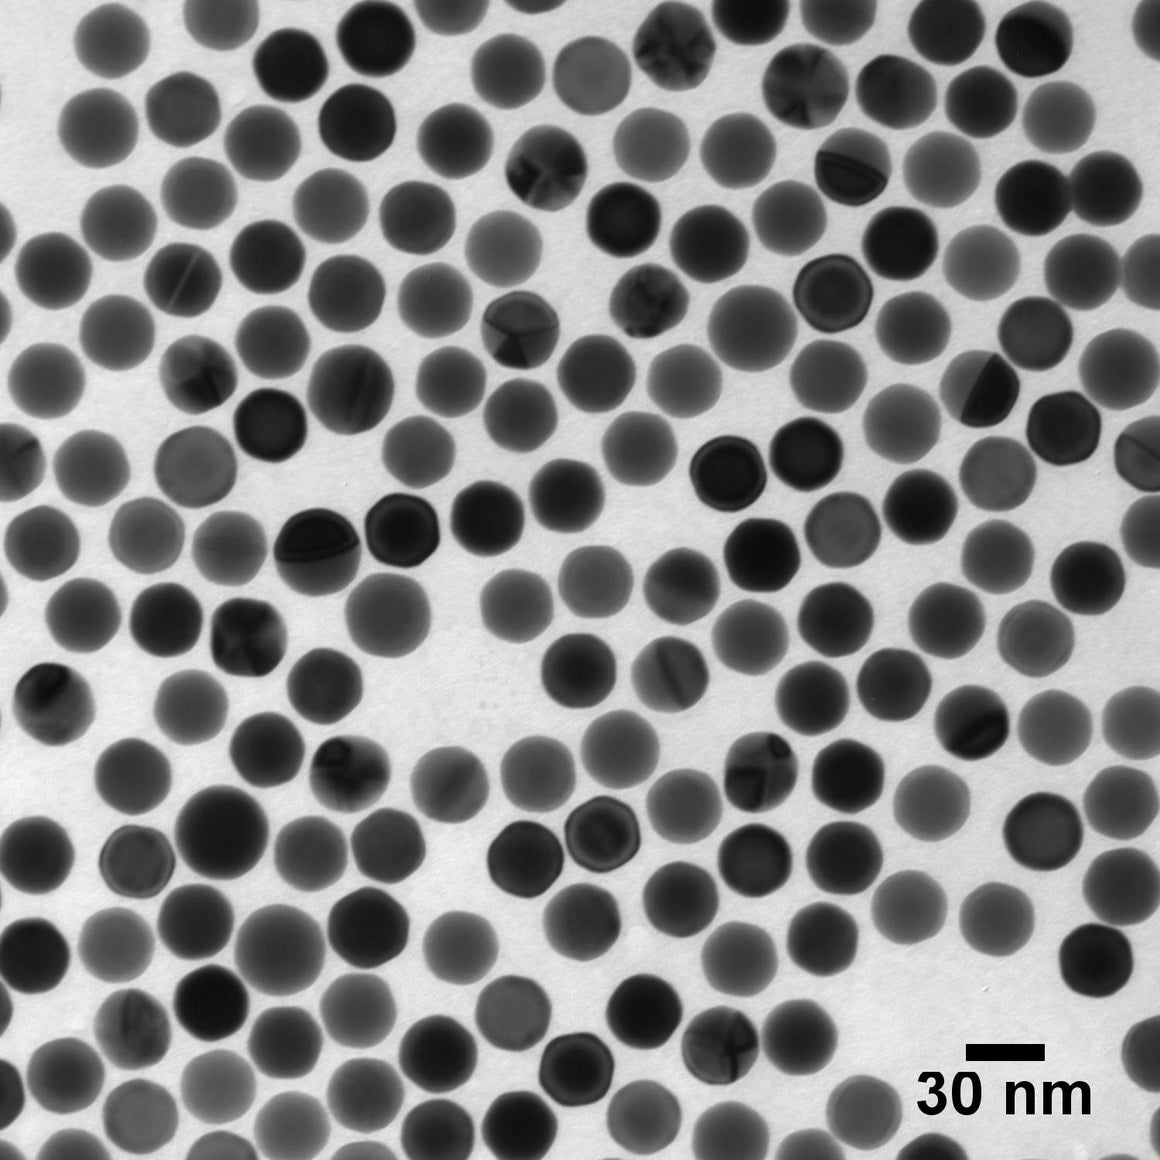 Ultra Uniform Gold Nanospheres – PEG-Carboxyl